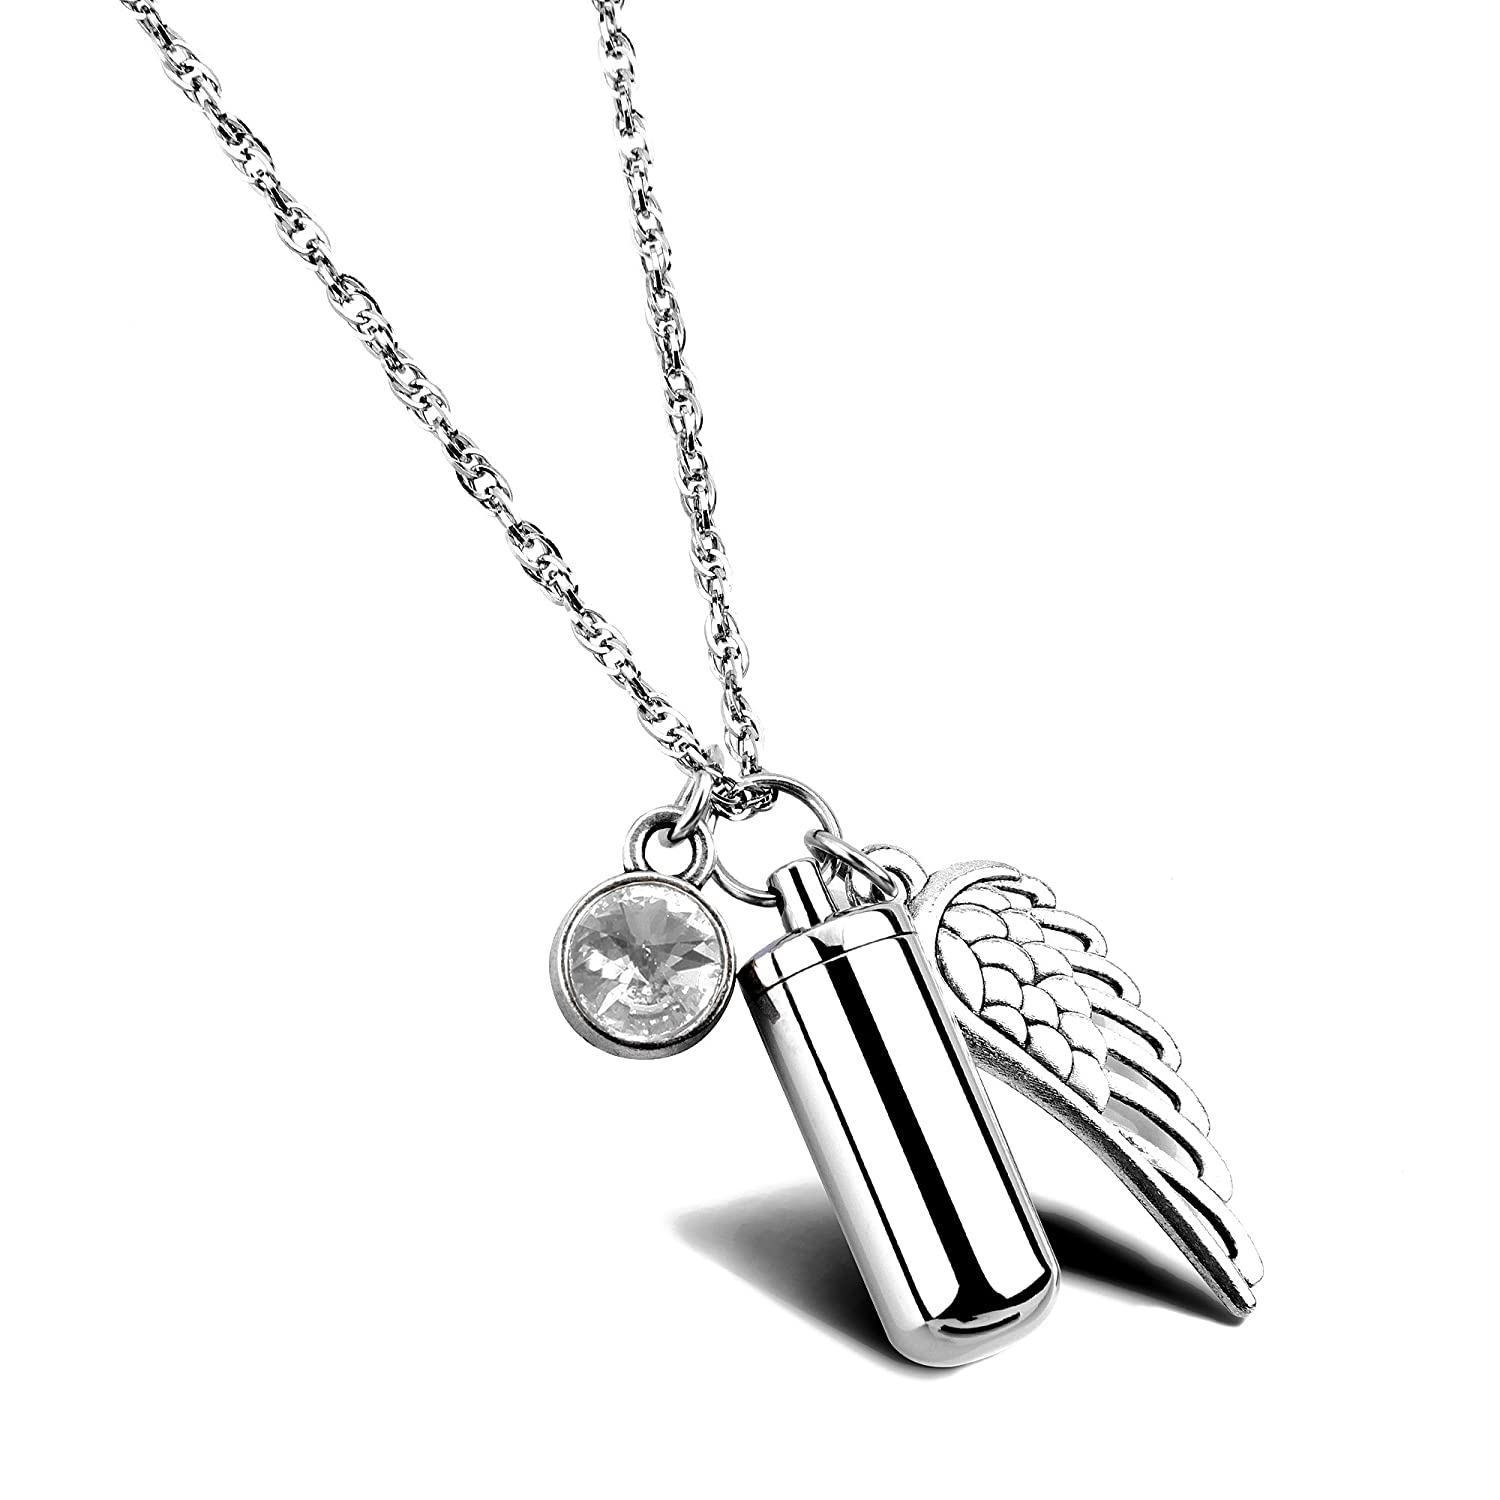 Men Silver Fashion Mens Cross On Cylinder Cremation Urn Necklace Ashes Keepsake Memorial Pendant Lifeleaflegal Com